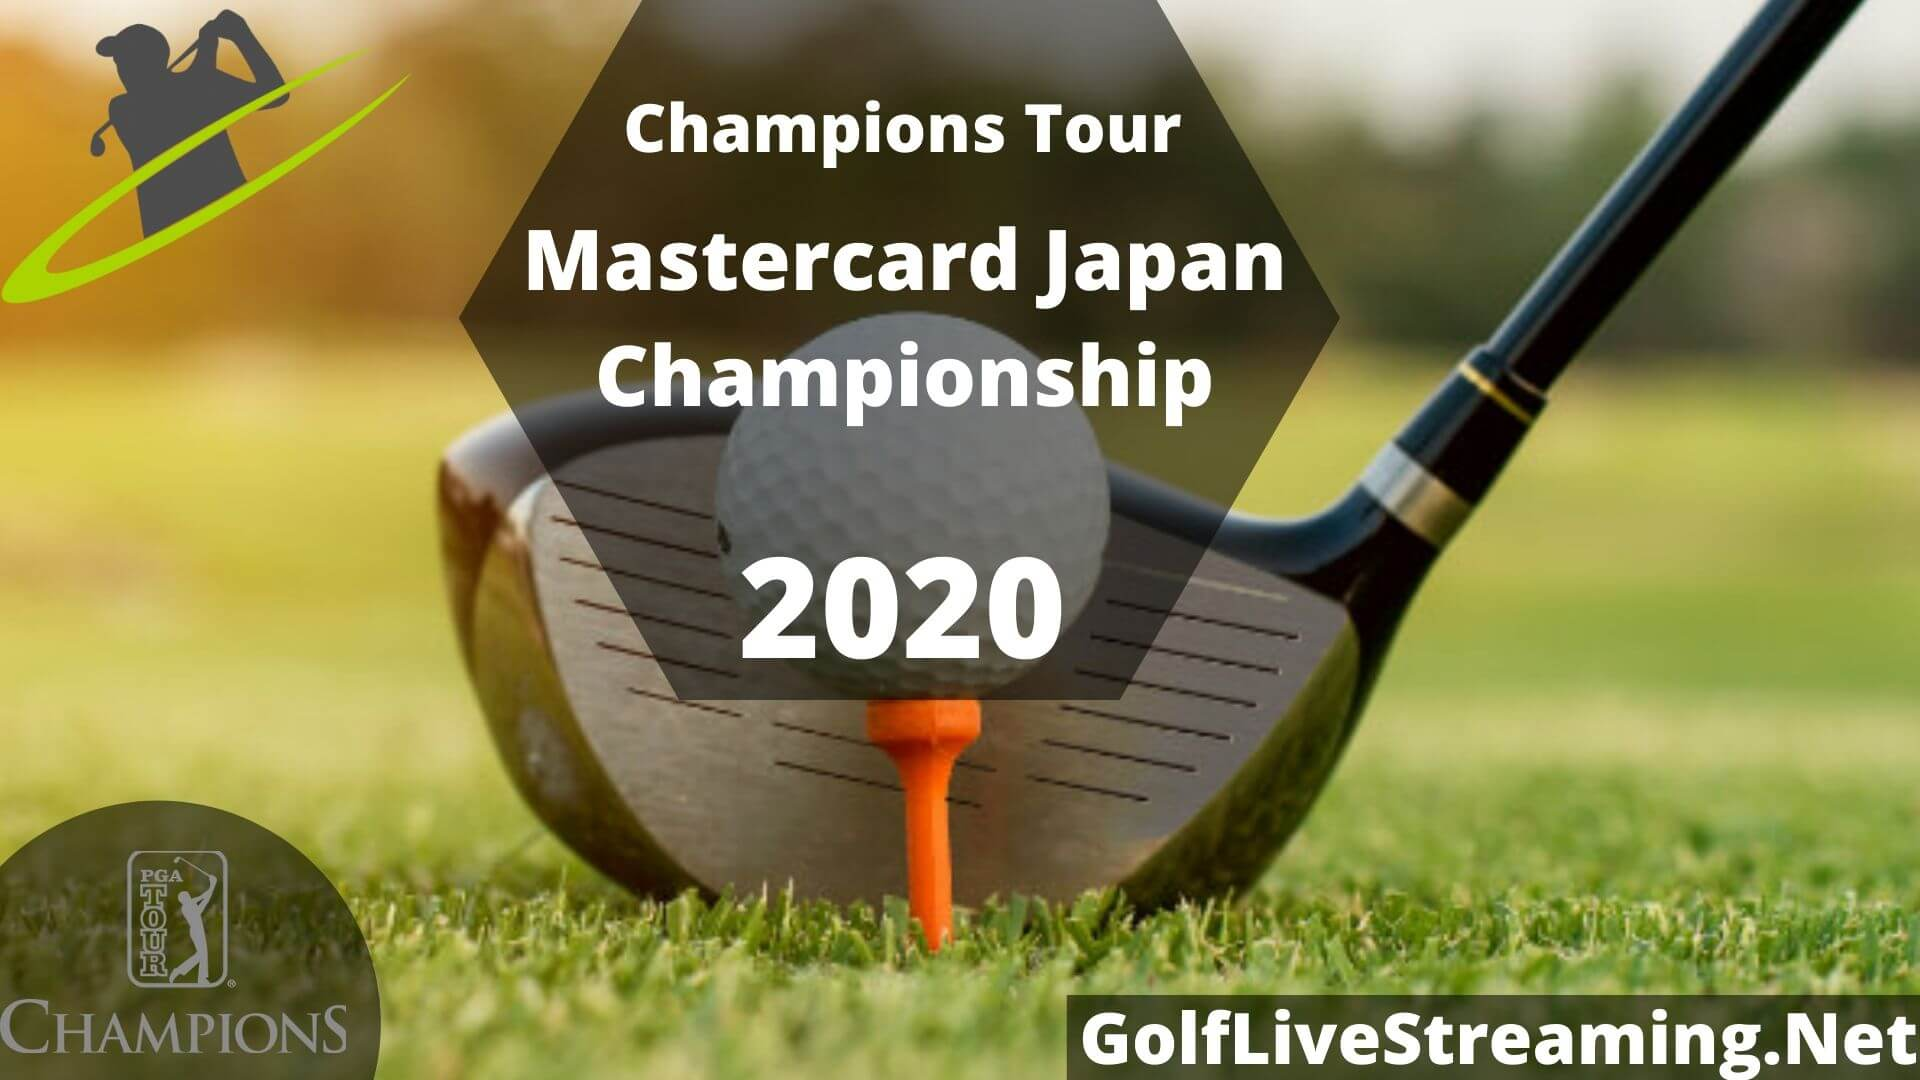 Mastercard Japan Championship Live Stream 2020 | Champions Tour Round 2